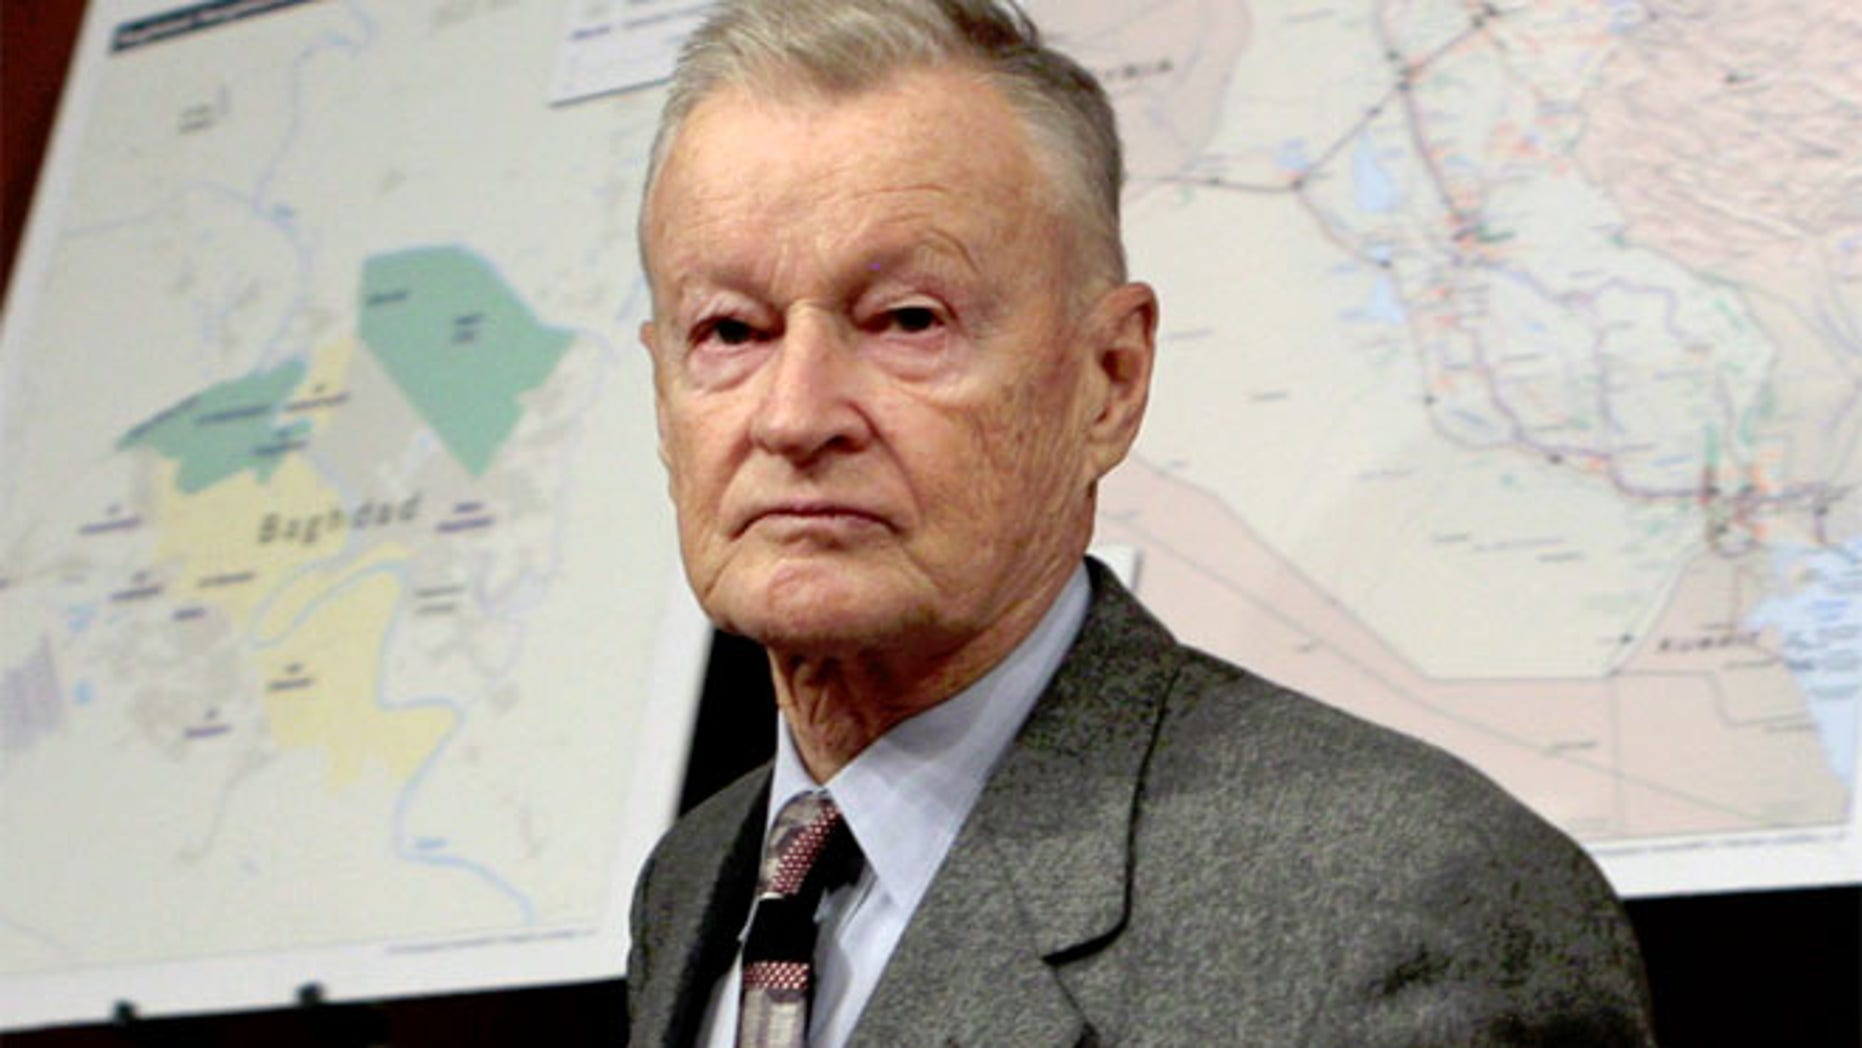 FILE 2007: Zbigniew Brzezinski arrives on Capitol Hill in Washington